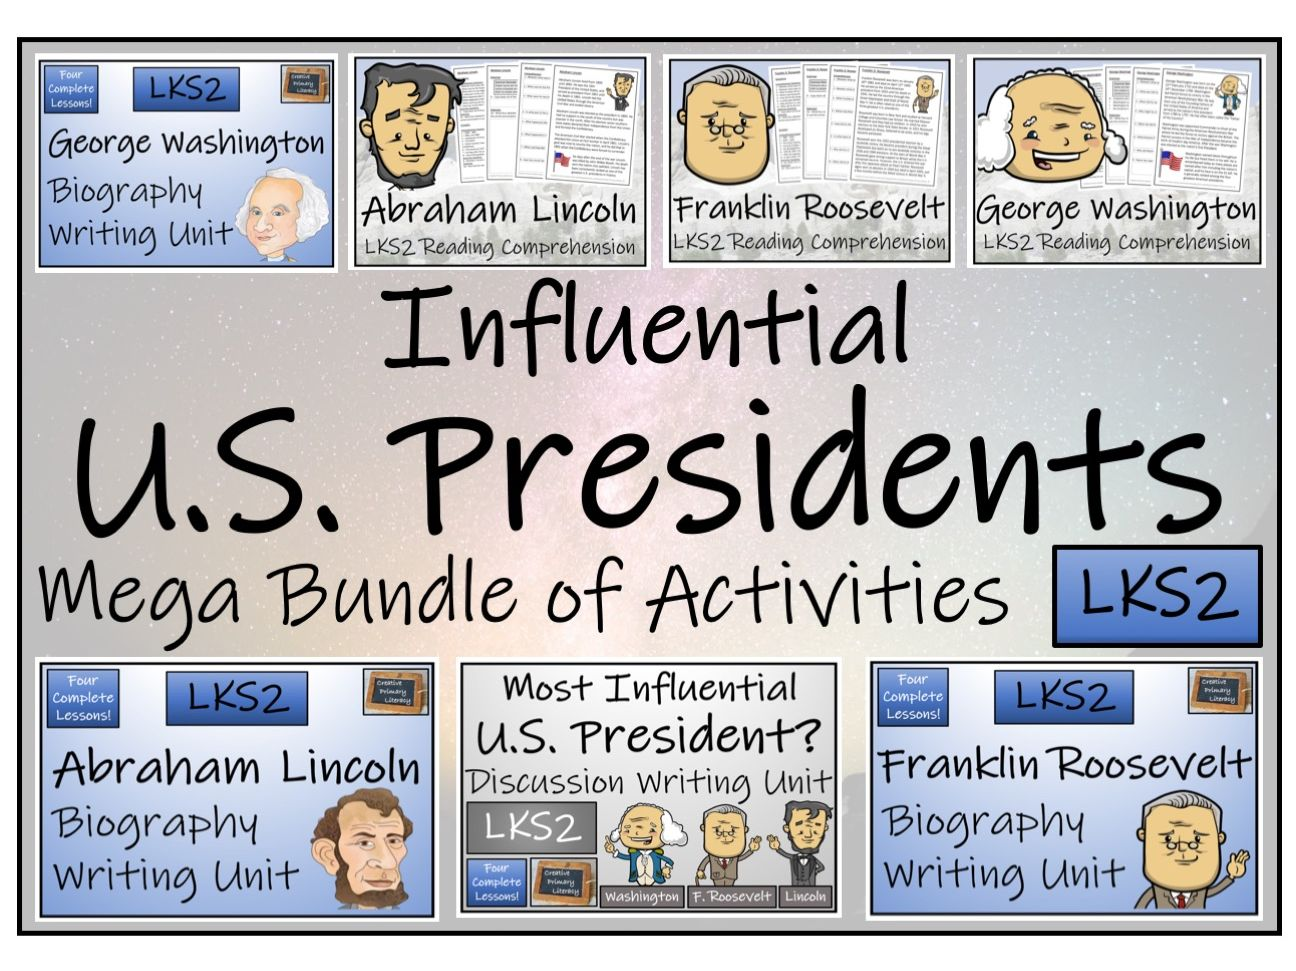 LKS2 History - Influential U.S. Presidents Reading Comprehension & Writing Bundle